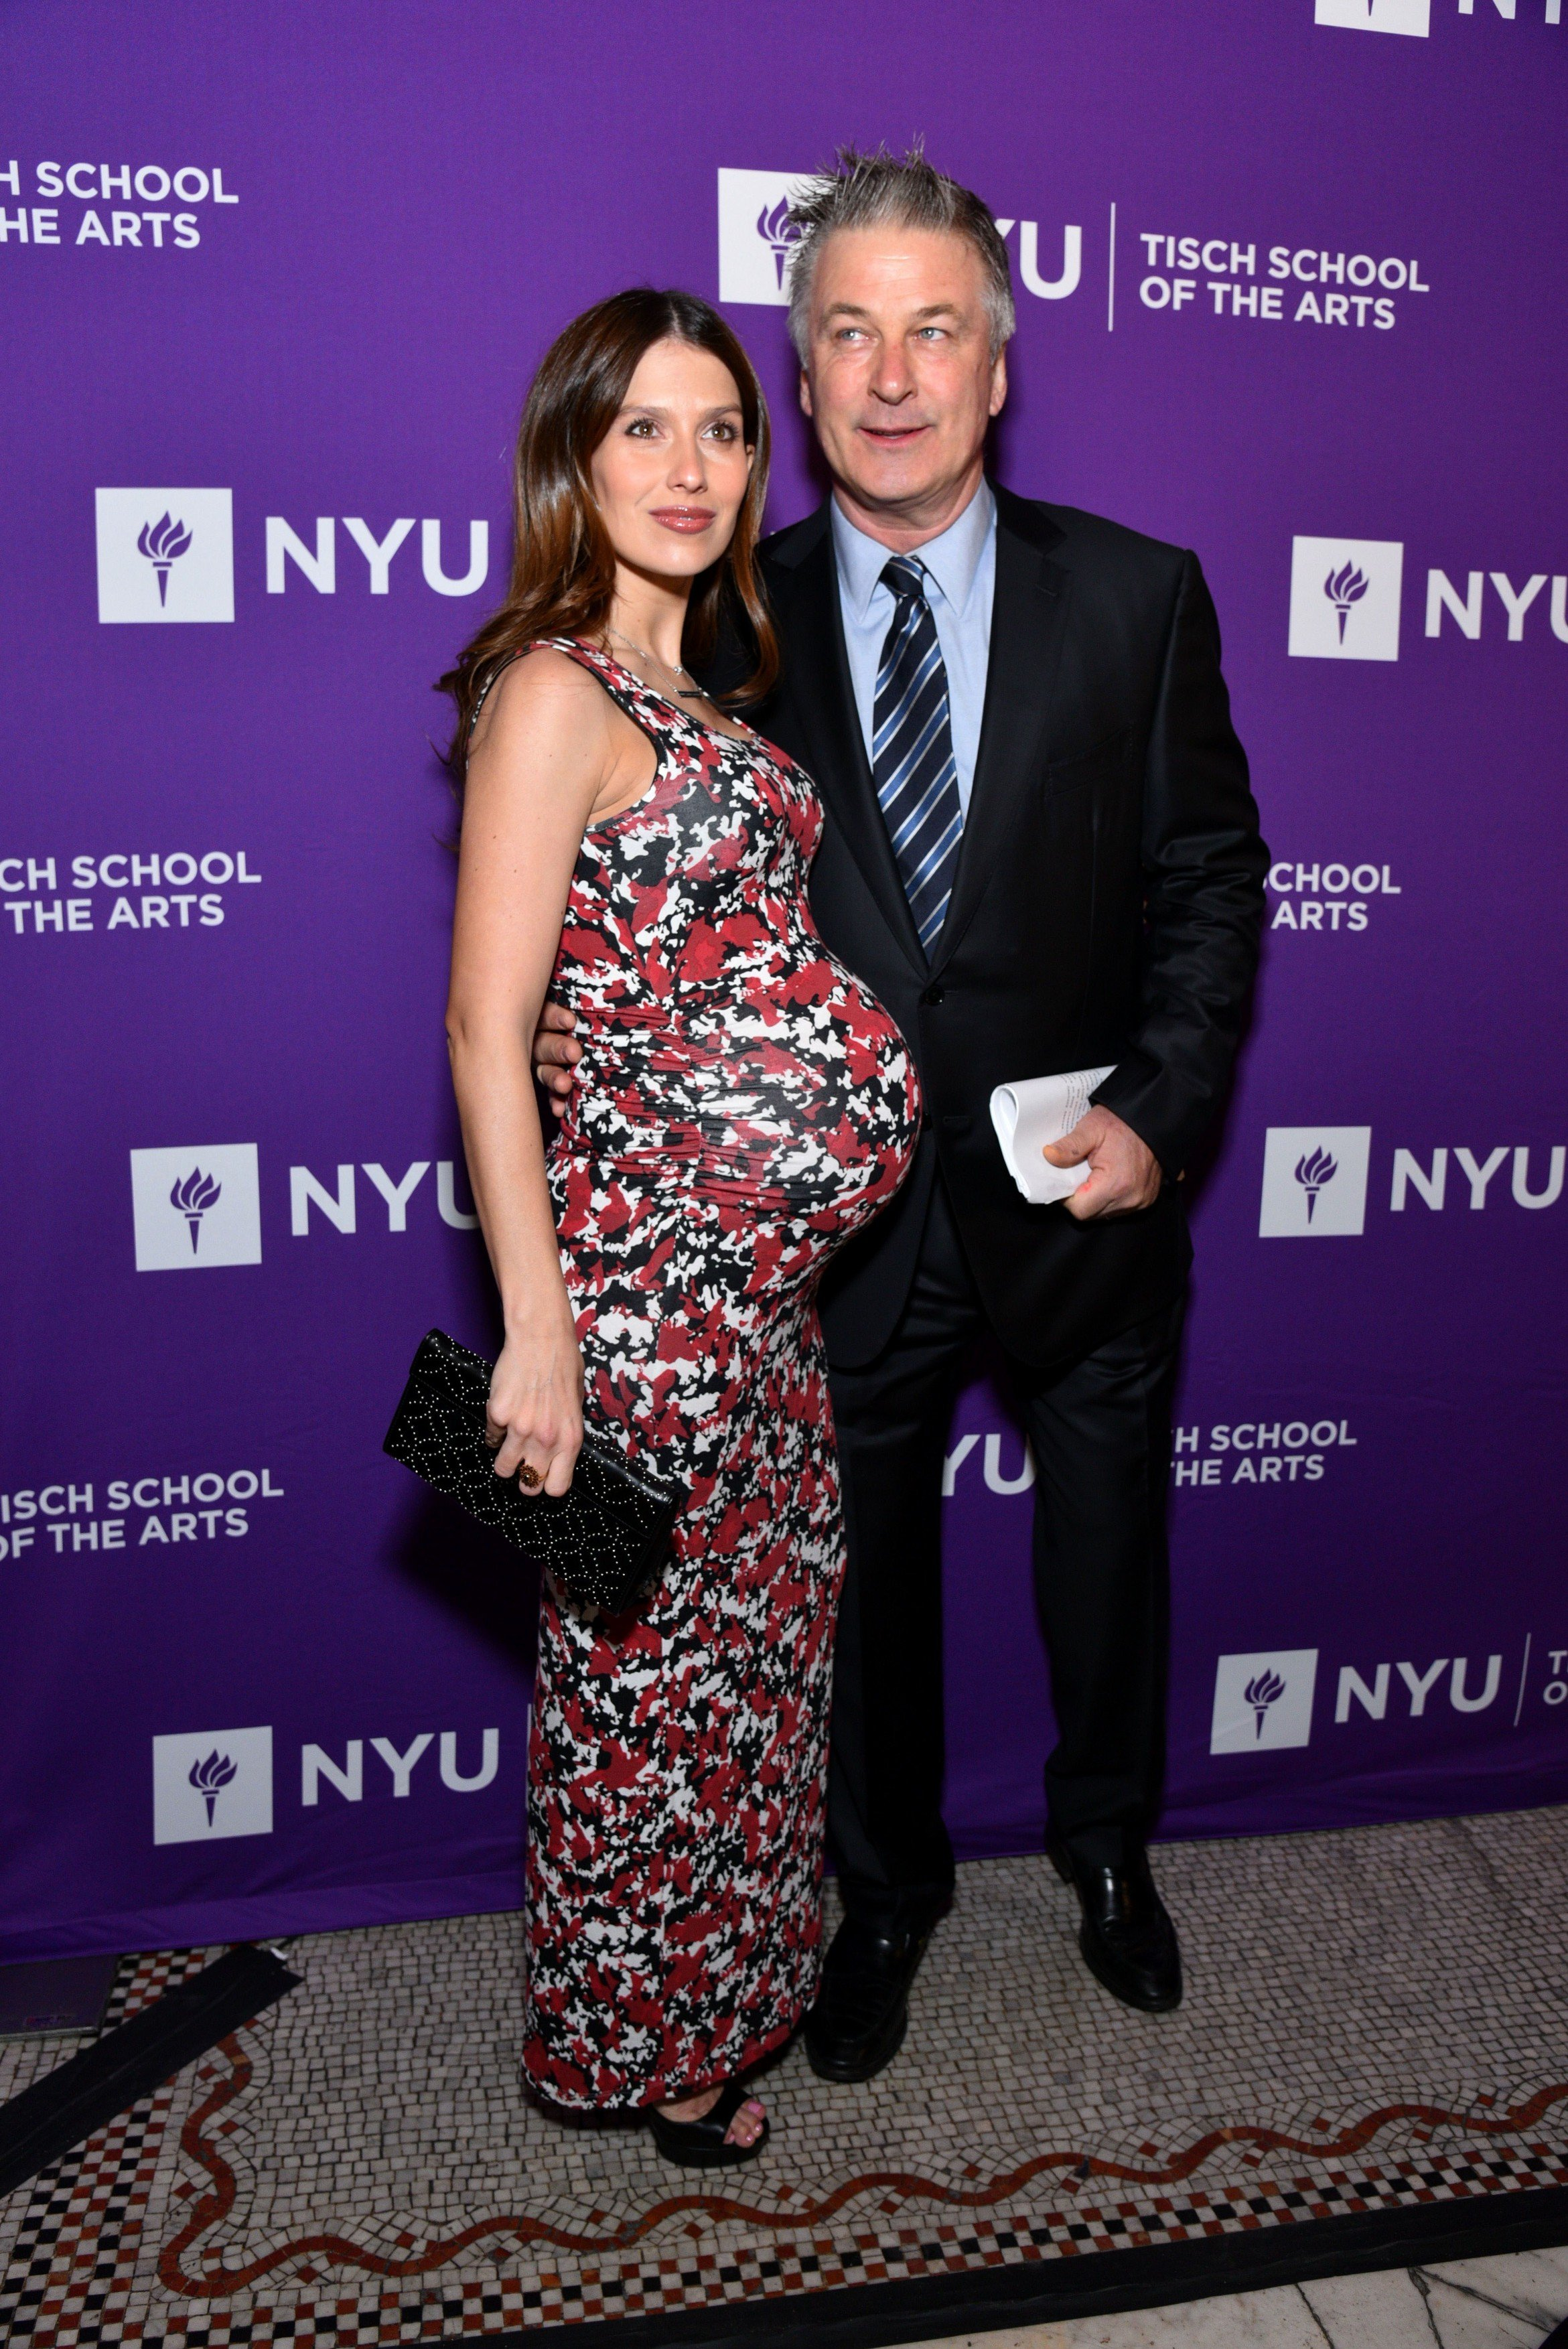 Hilaria Baldwin, Alec Baldwin NYU Tisch School of the Arts Gala, New York, USA - 16 Apr 2018, Image: 368717441, License: Rights-managed, Restrictions: , Model Release: no, Credit line: Profimedia, TEMP Rex Features